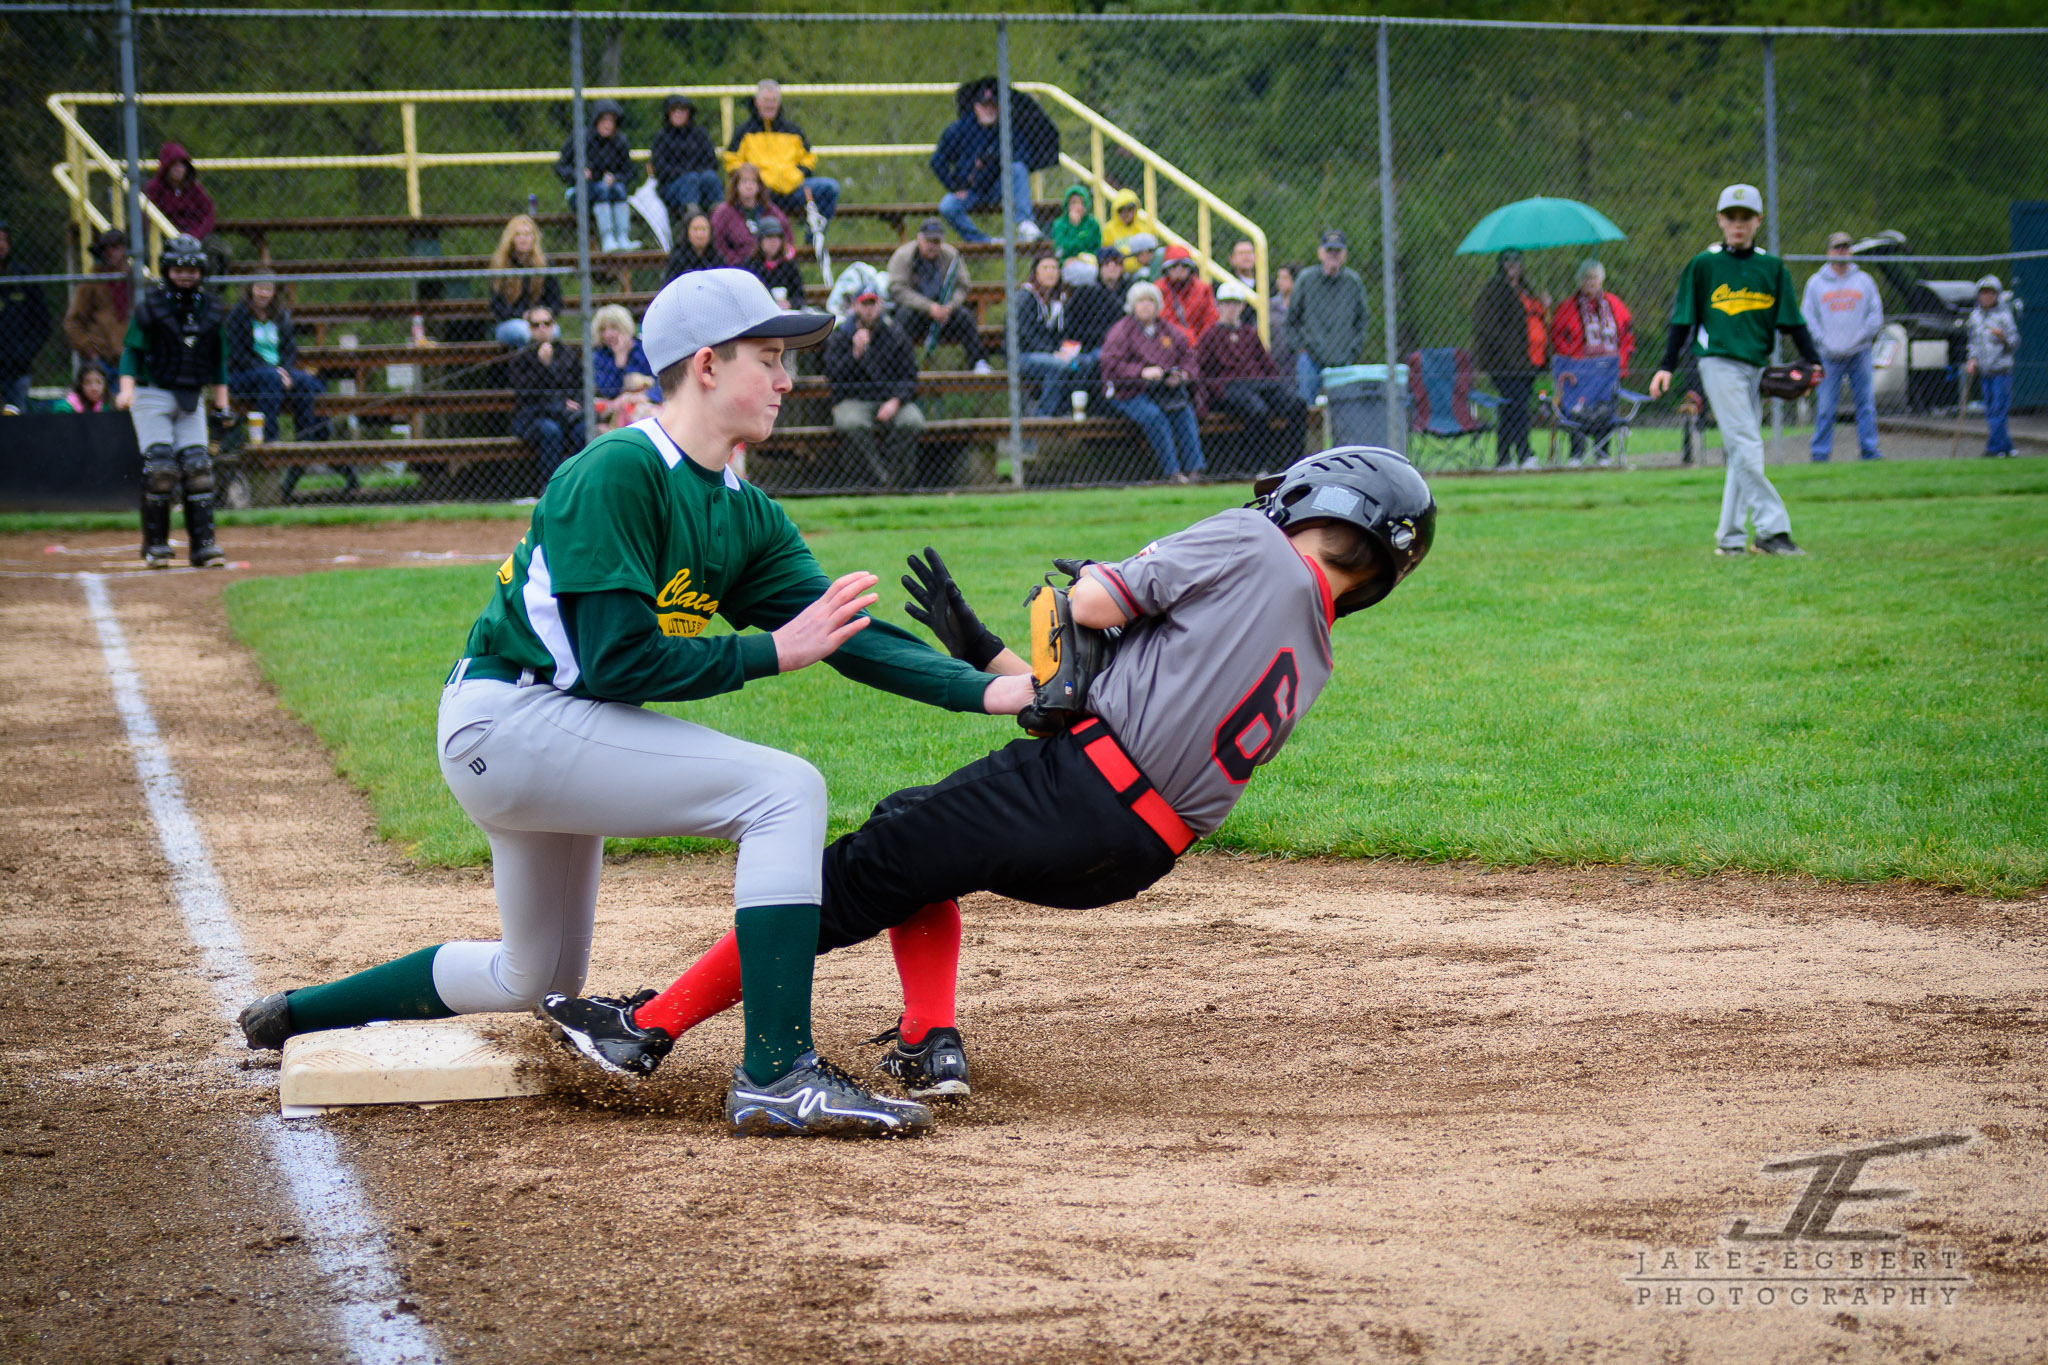 FB - 2014-04-05 - GreenSox - 19420.jpg